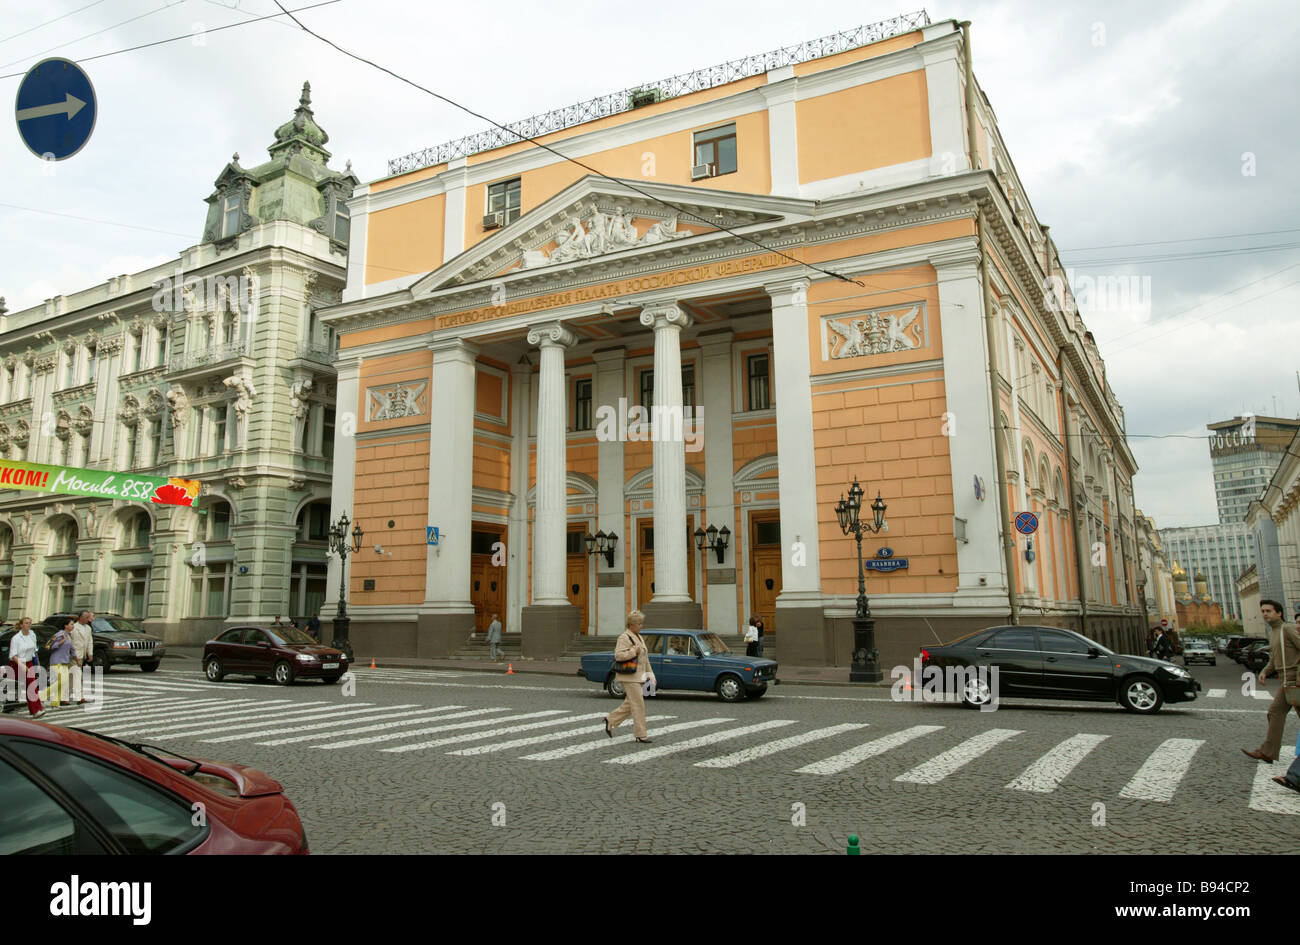 The building of the Chamber of Commerce and Industry in Moscow - Stock Image